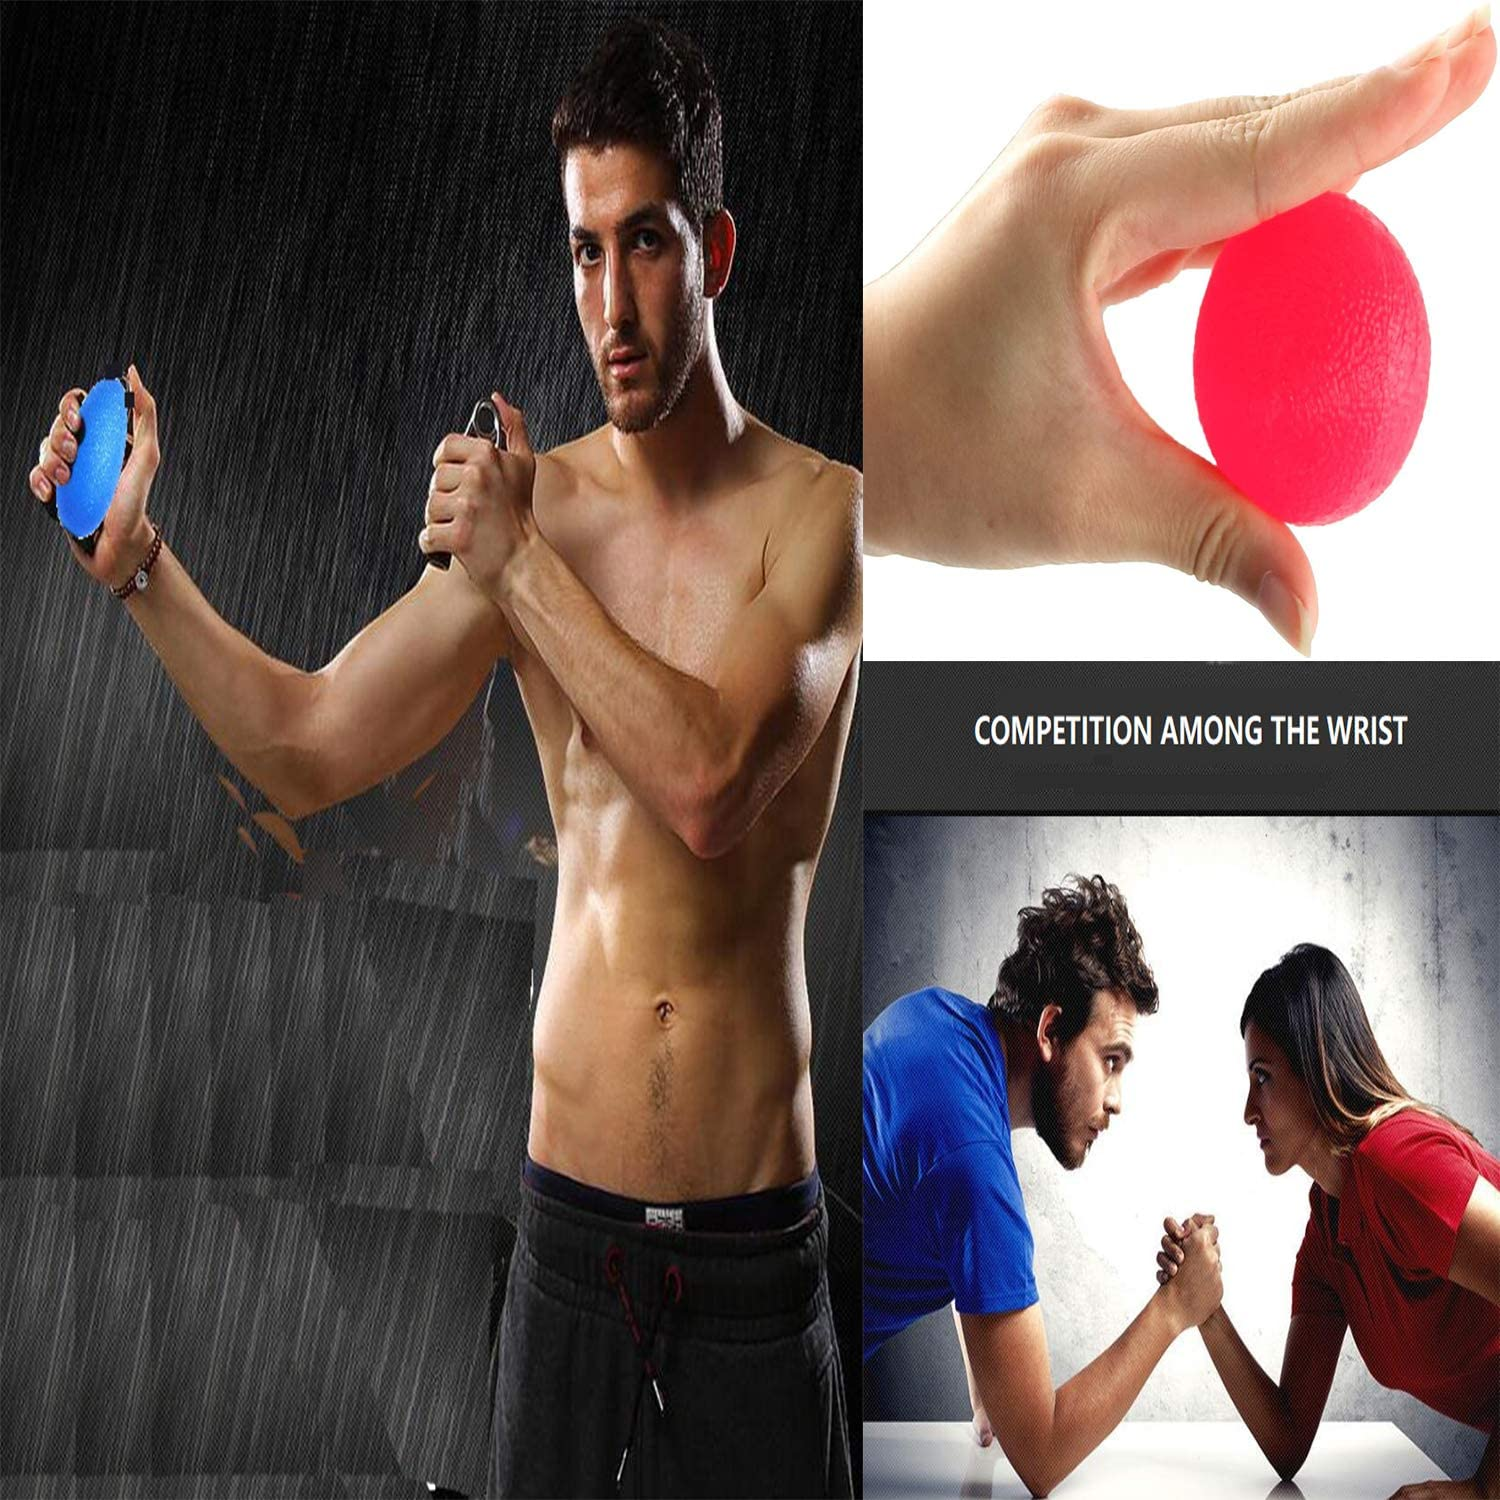 Physical Rehabilitation /& Grip Strengthener /& Stress Relief Hand Grip Strengthener Balls,Silicone Massage Therapy Grip Balls,3 Different Strengths for Children Set of 3 Adults,Seniors